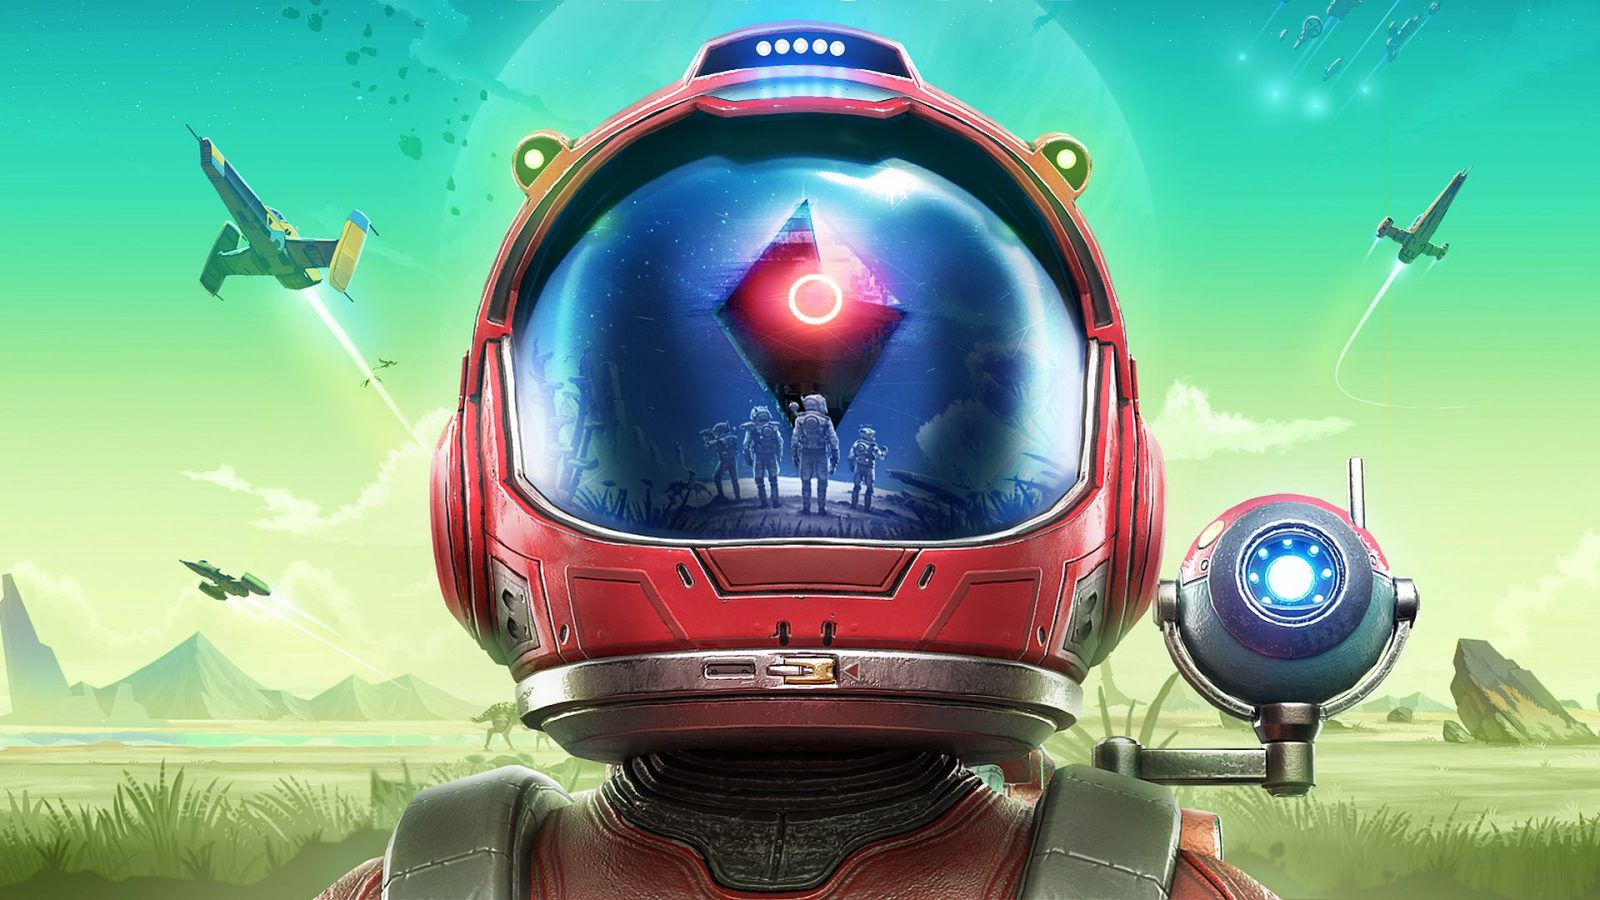 Big No Man's Sky update, Synthesis, announced – here's what it adds